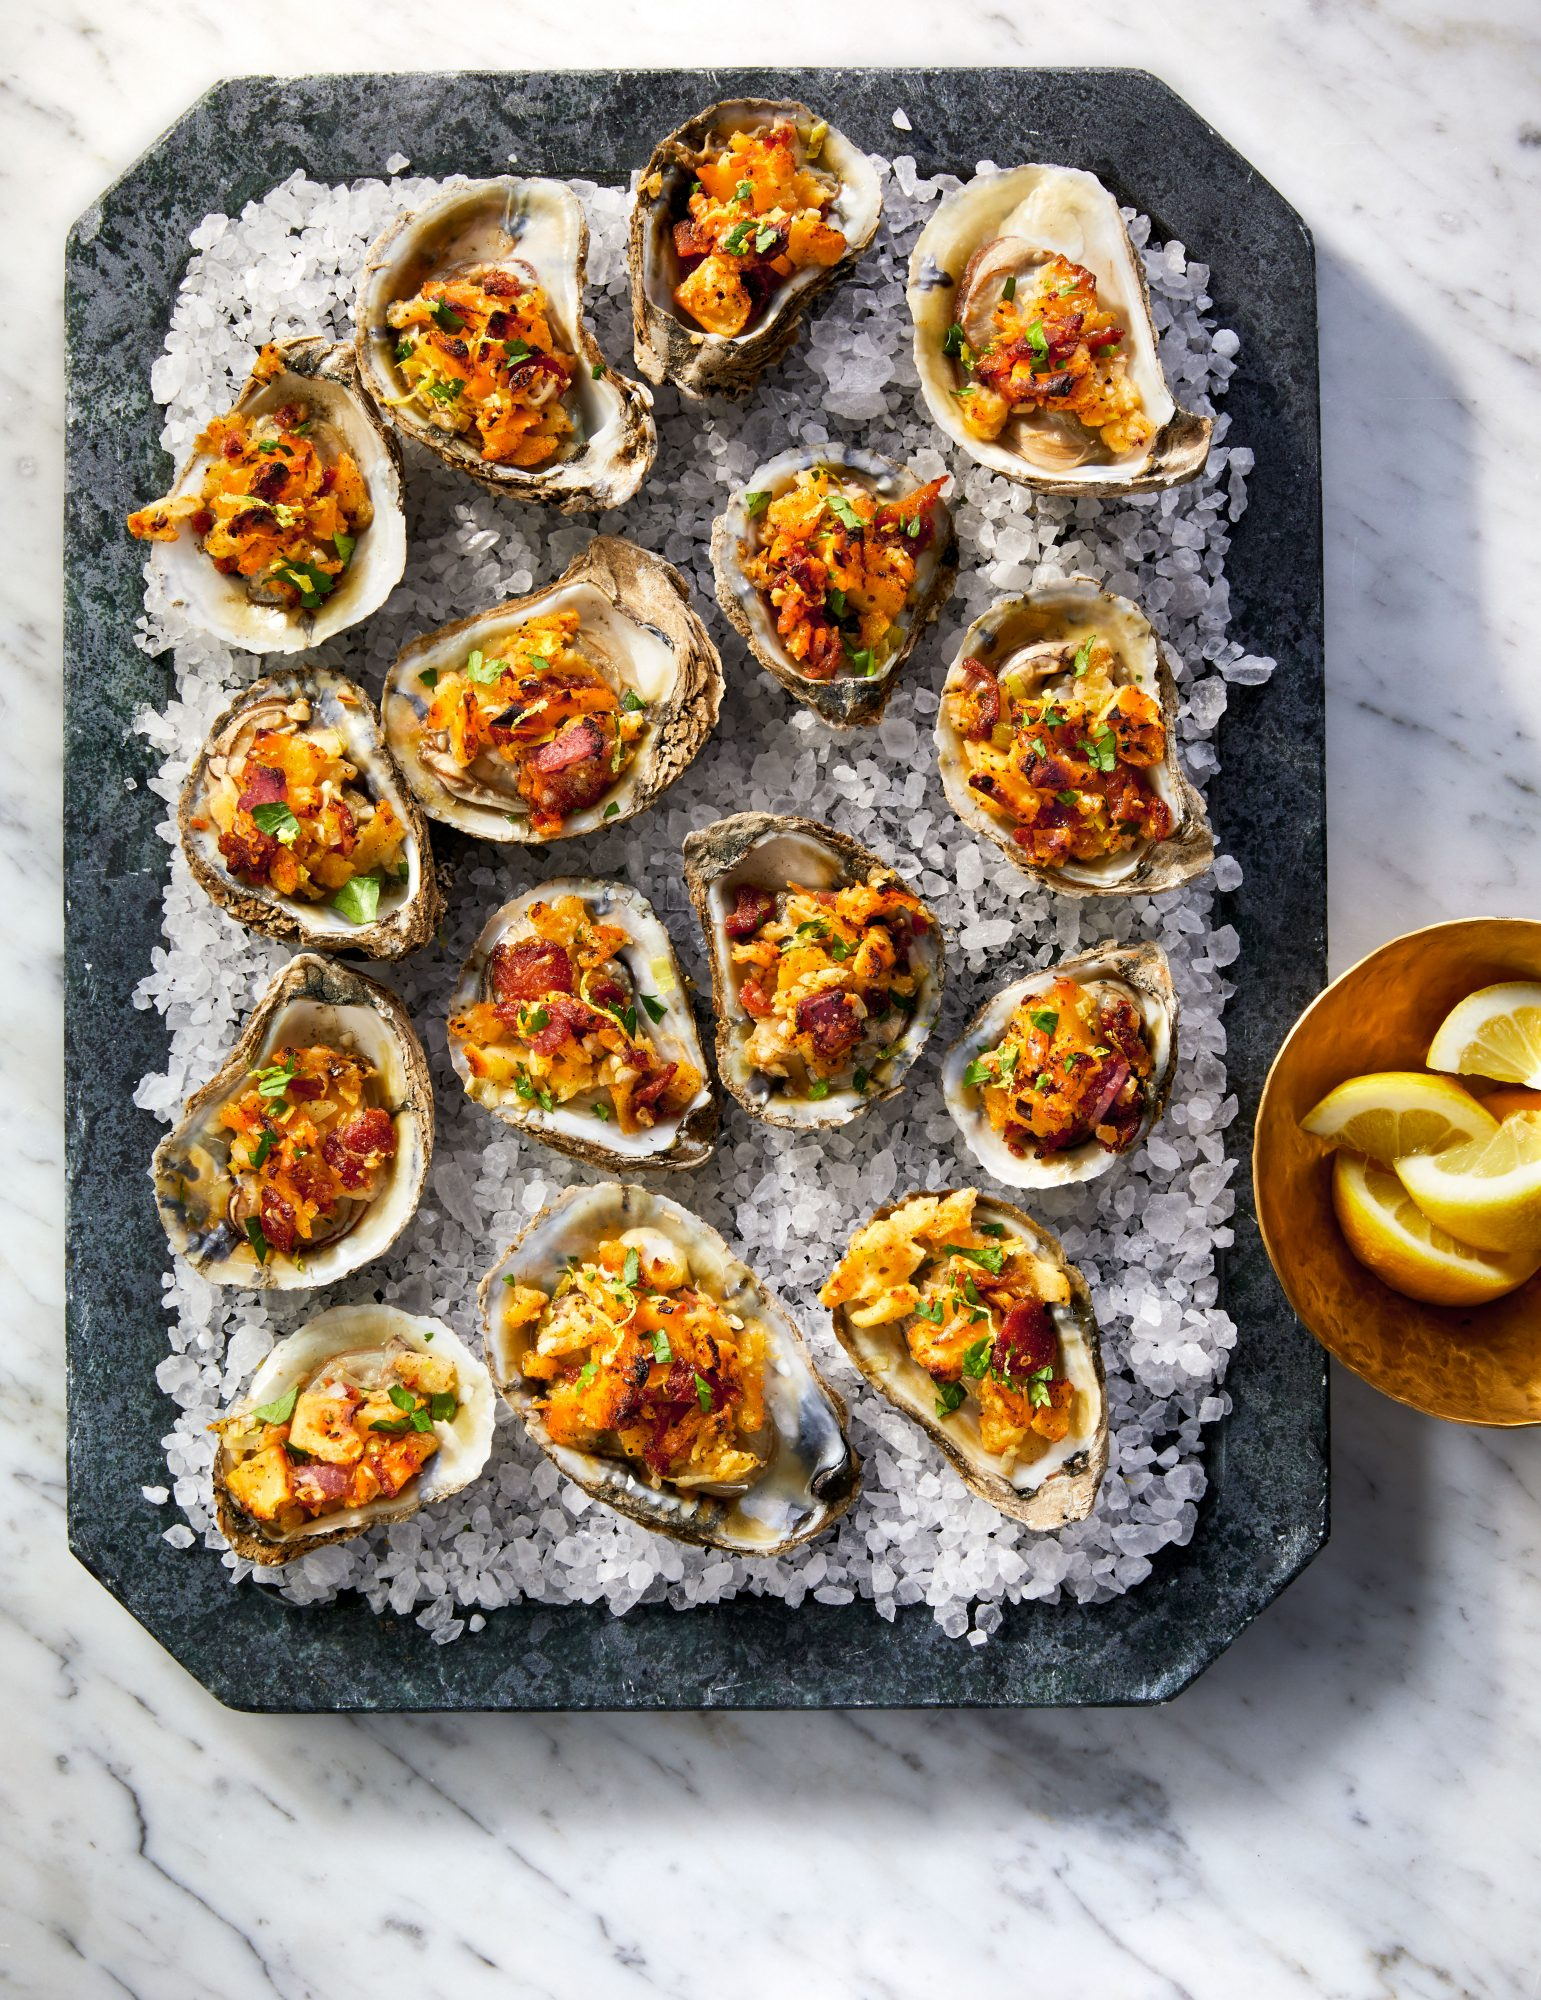 Roasted Oysters with Bacon-Saltine Topping